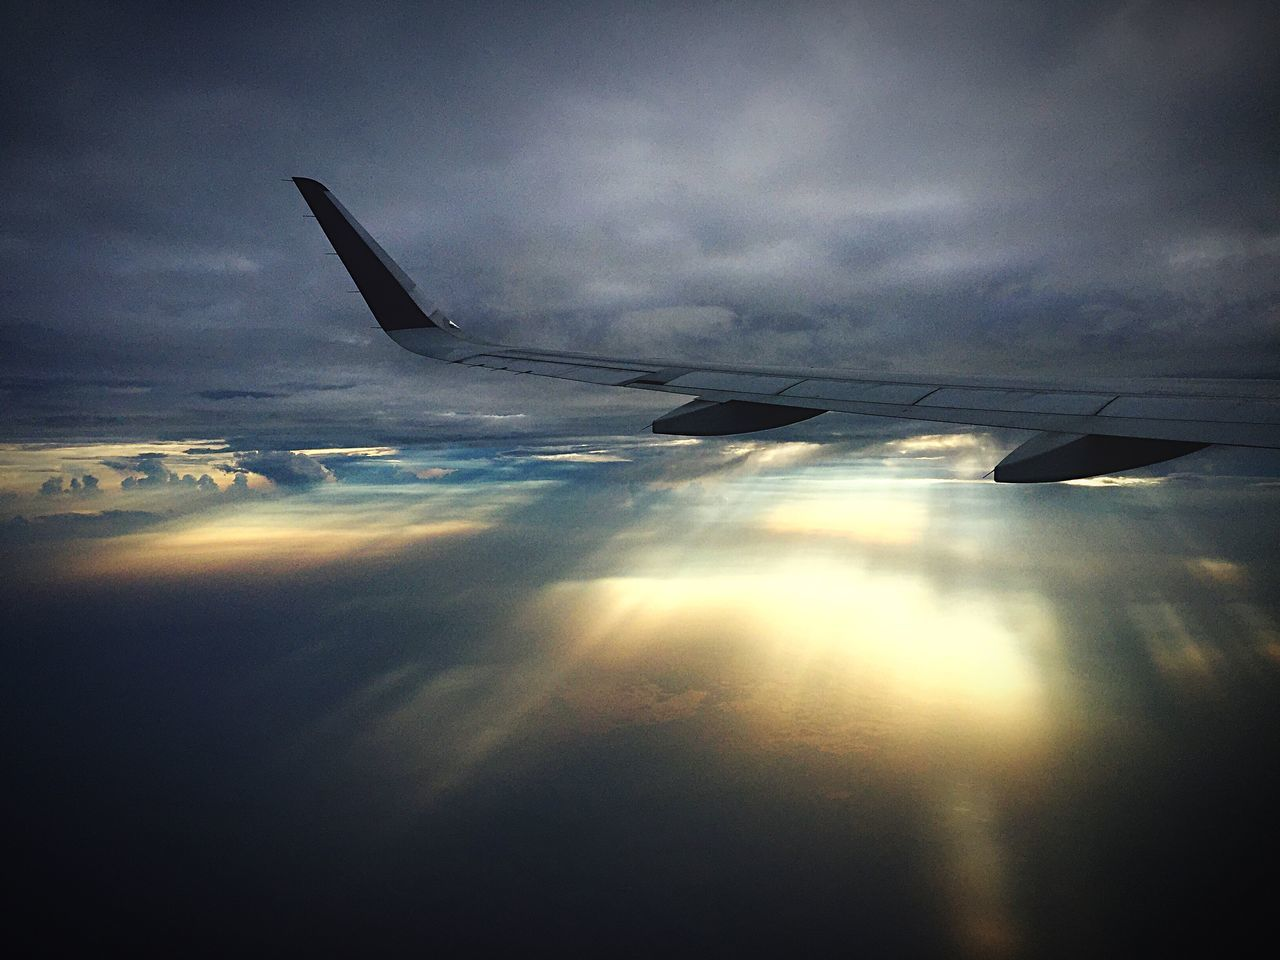 airplane, sky, transportation, cloud - sky, airplane wing, journey, no people, nature, aerial view, beauty in nature, travel, flying, outdoors, aircraft wing, air vehicle, day, scenics, close-up